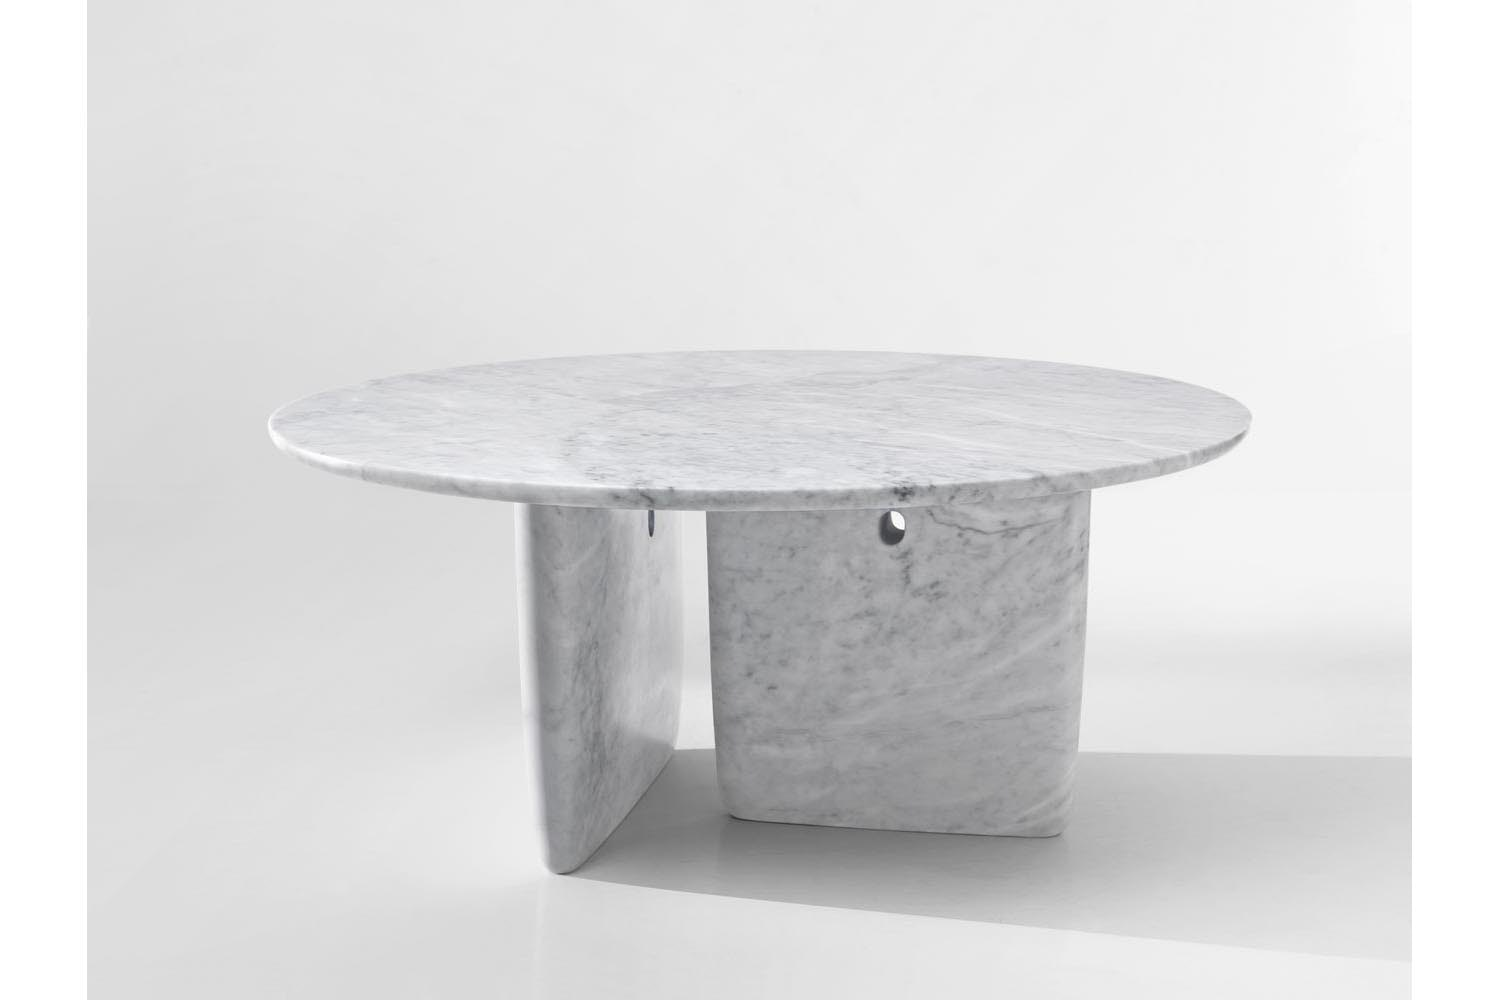 Tobi-Ishi Marble Table by Edward Barber & Jay Osgerby